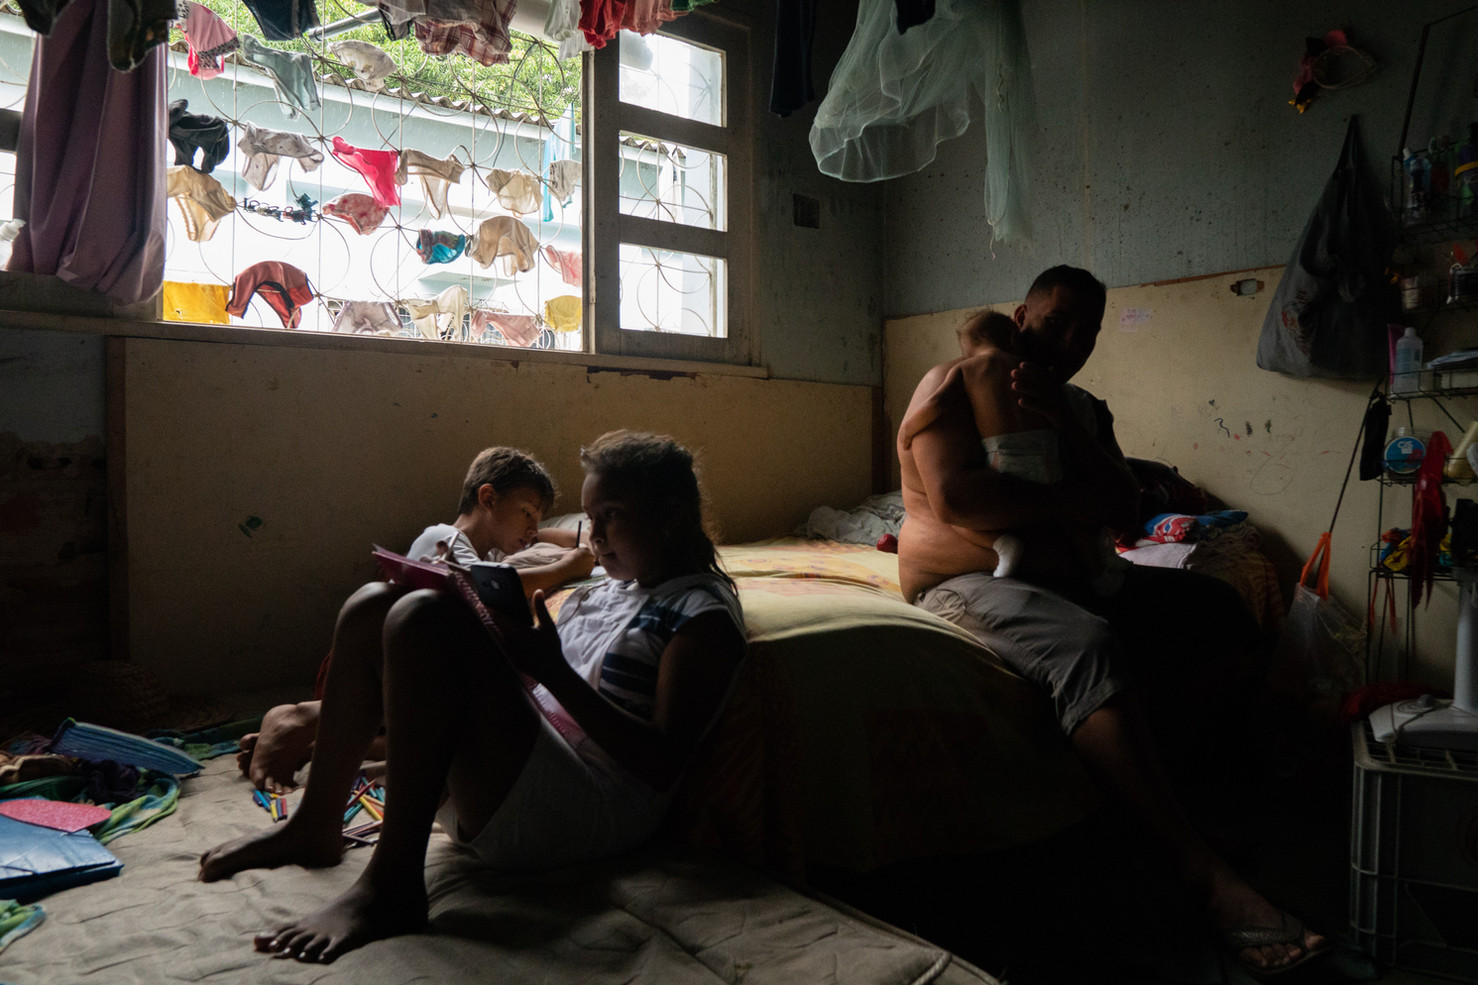 """A fathers holds his baby while his two children study within the informal occupation by Venezuelan immigrants called """"Happy Child"""" at the former headquarters of the Secretariat for Strategic Management and Administration (SEGAD) which houses approximately 450 people in 52 rooms at São Francisco neighborhood due to the lack of financial resources and the overload in the refugee assistance system in Boa Vista, Roraima state, Brazil, June 29, 2020. This building was empty for at least 10 years and has serious structural problems being in danger of collapsing according to the state Civil Defense."""